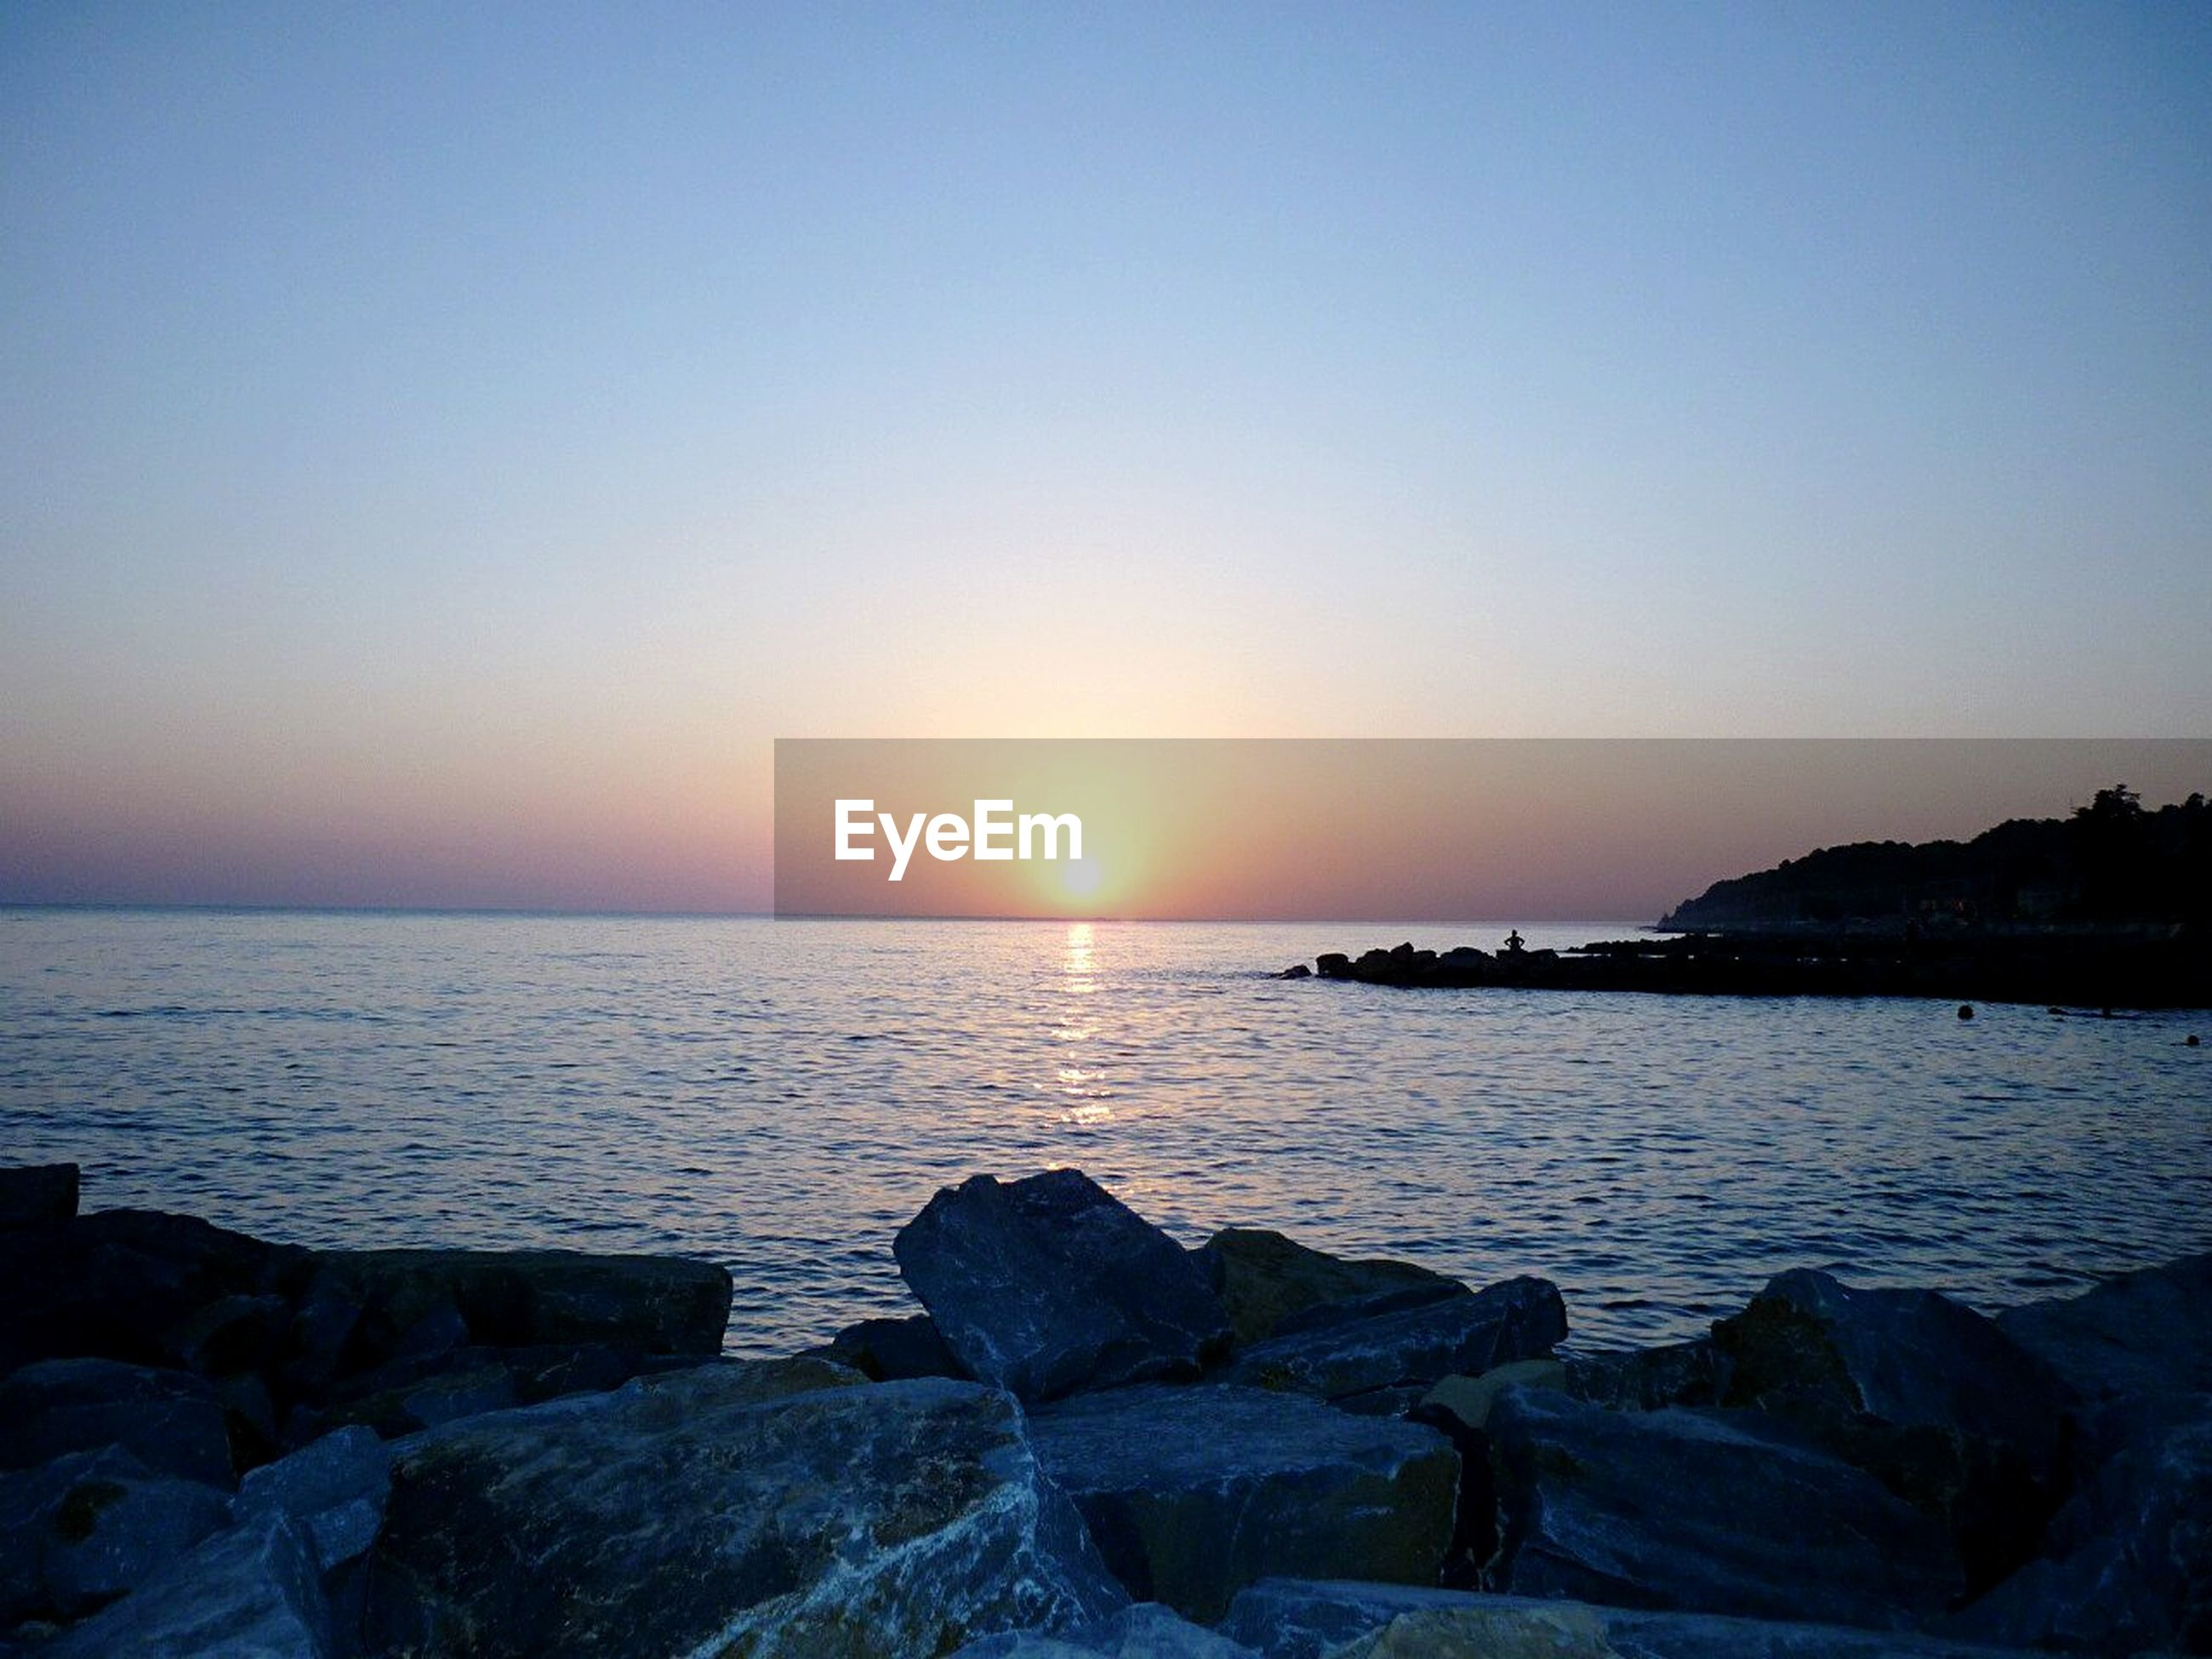 sea, water, sunset, scenics, tranquil scene, horizon over water, beauty in nature, sun, rock - object, tranquility, clear sky, nature, idyllic, shore, rock formation, copy space, beach, rock, silhouette, sky